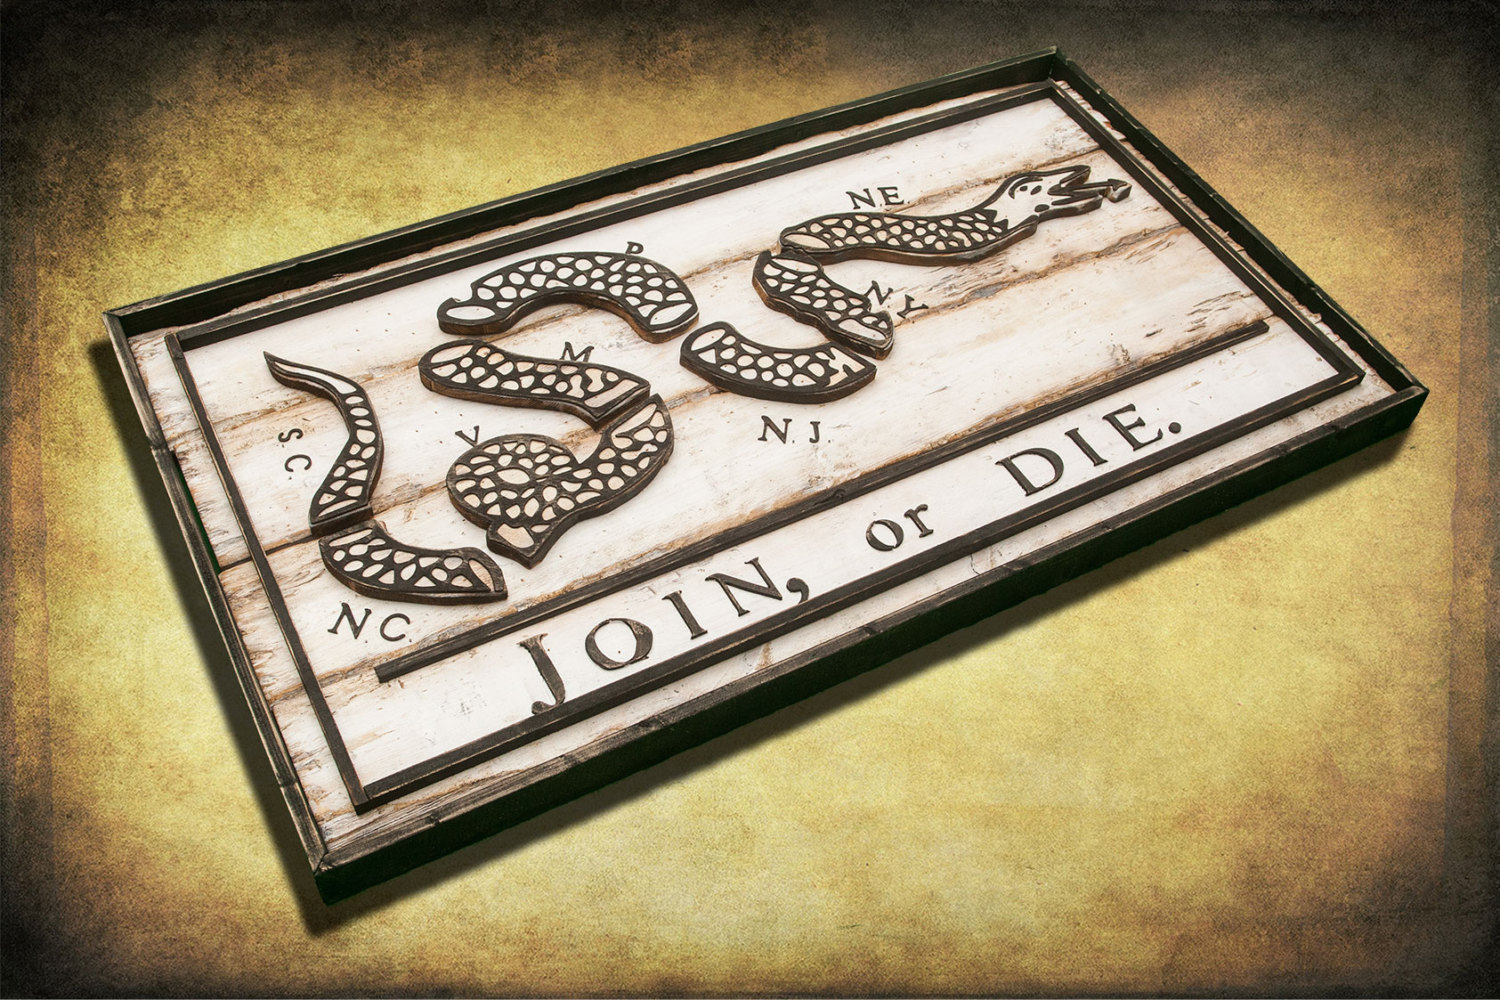 Join Or Die Flag Limited Edition Weathered Wood One Of A Kind Vintage Art Distressed Weathered Recycled Snake White